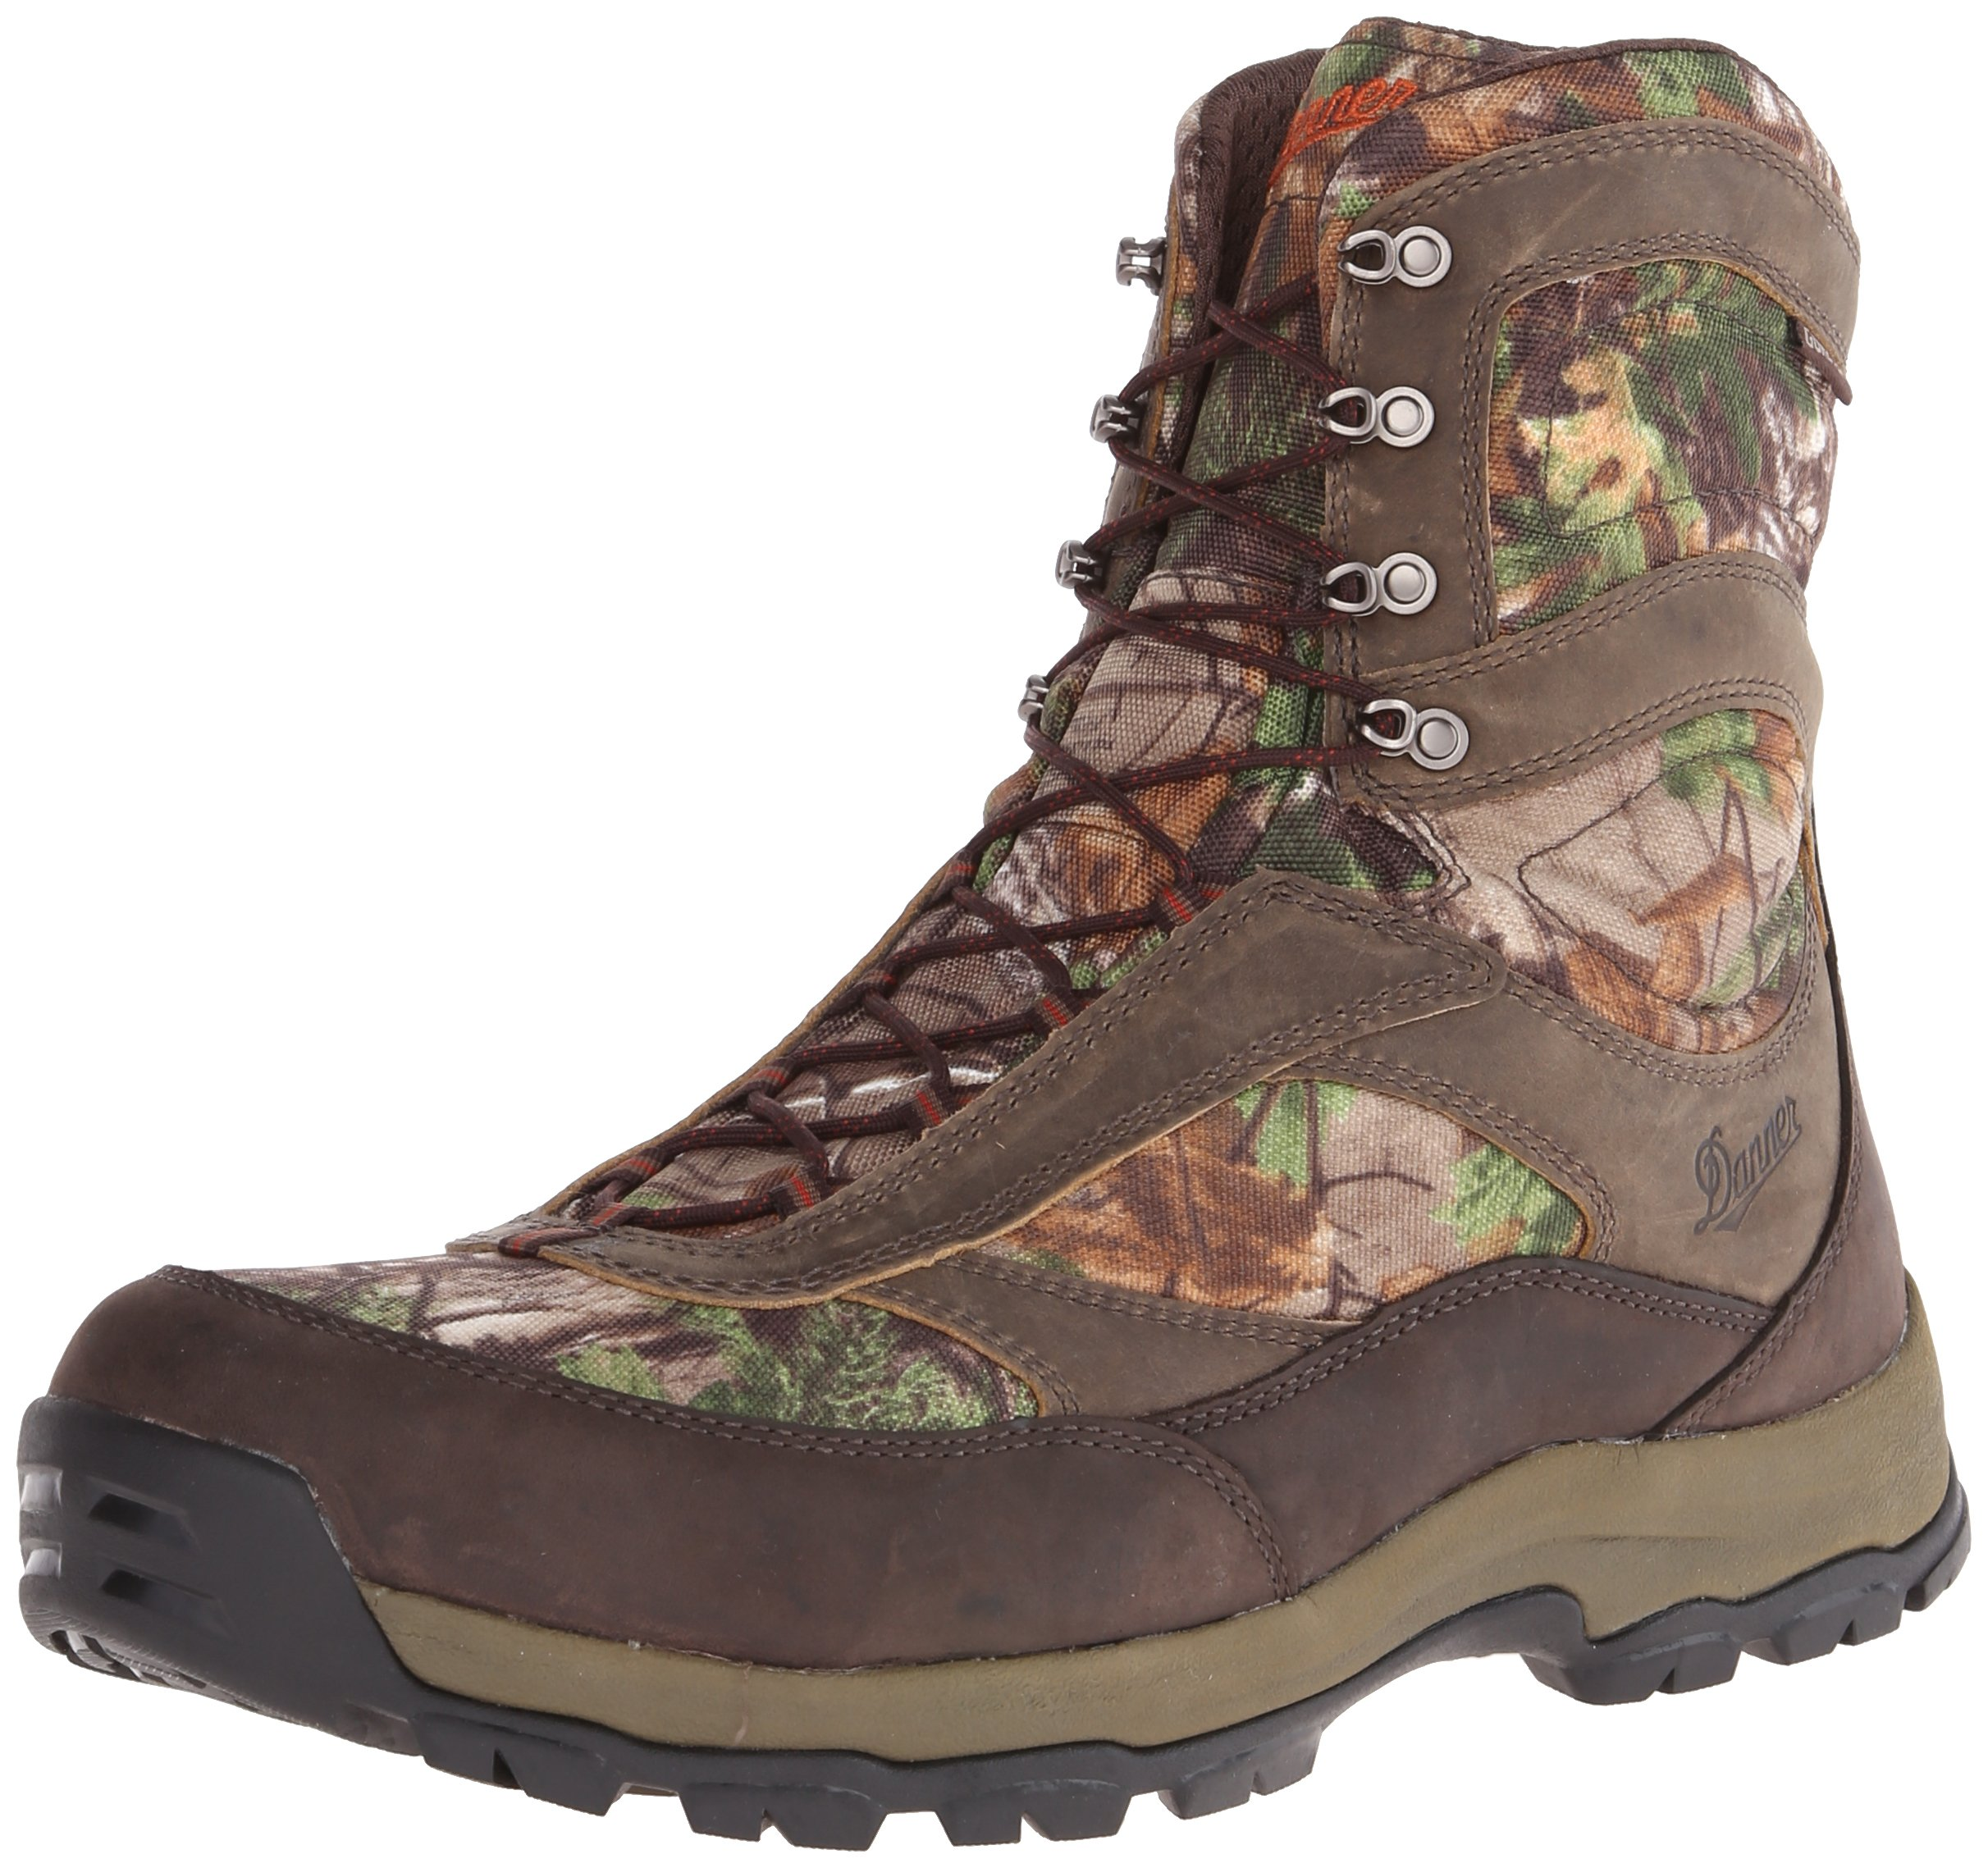 Danner Men's High Ground 8'' Realtree Xtra Hunting Boot,Brown/Green,8.5 D US by Danner